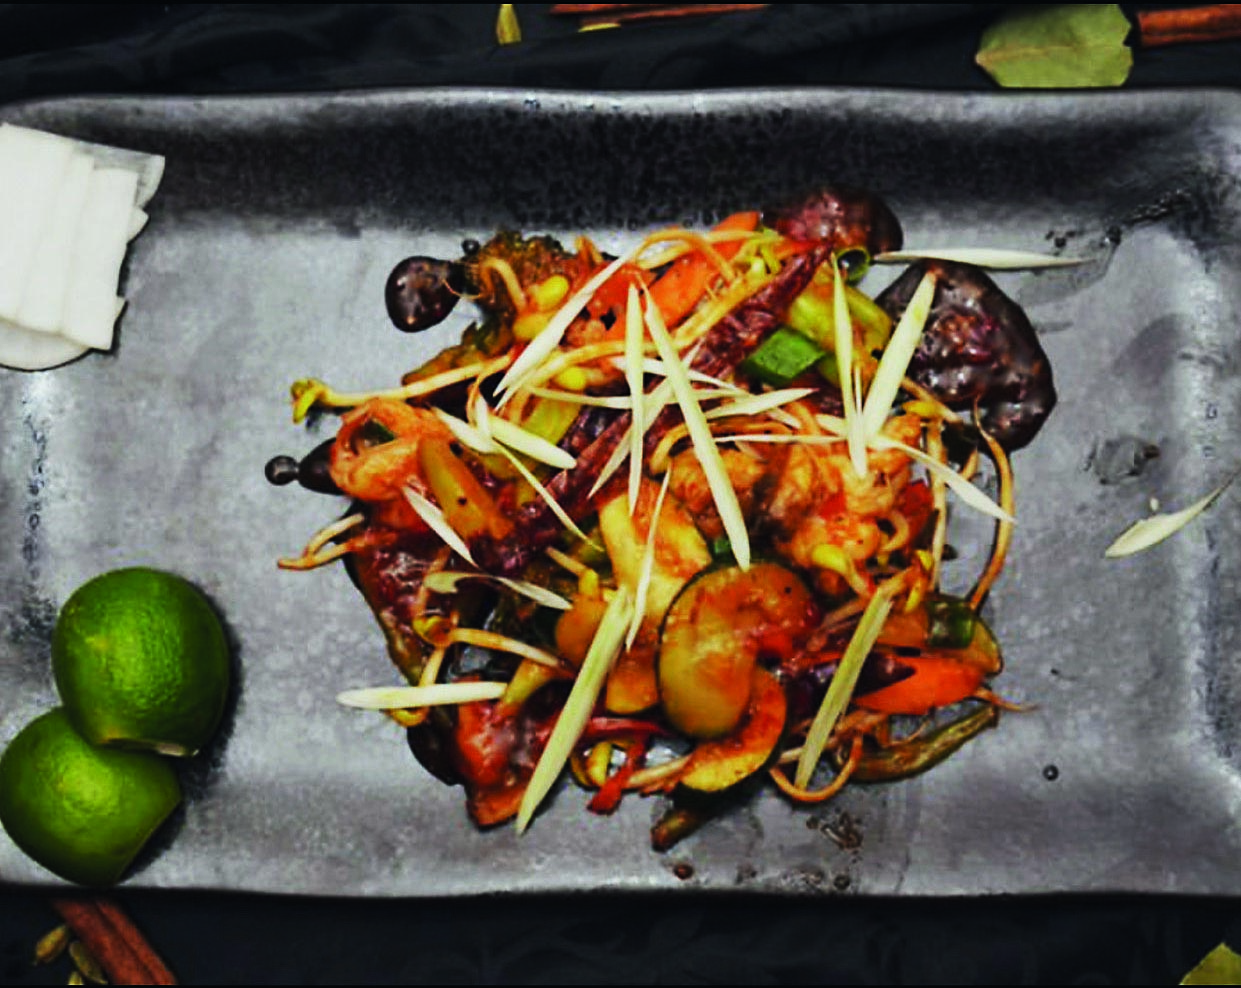 'In control' of the fabulous flavours of the East